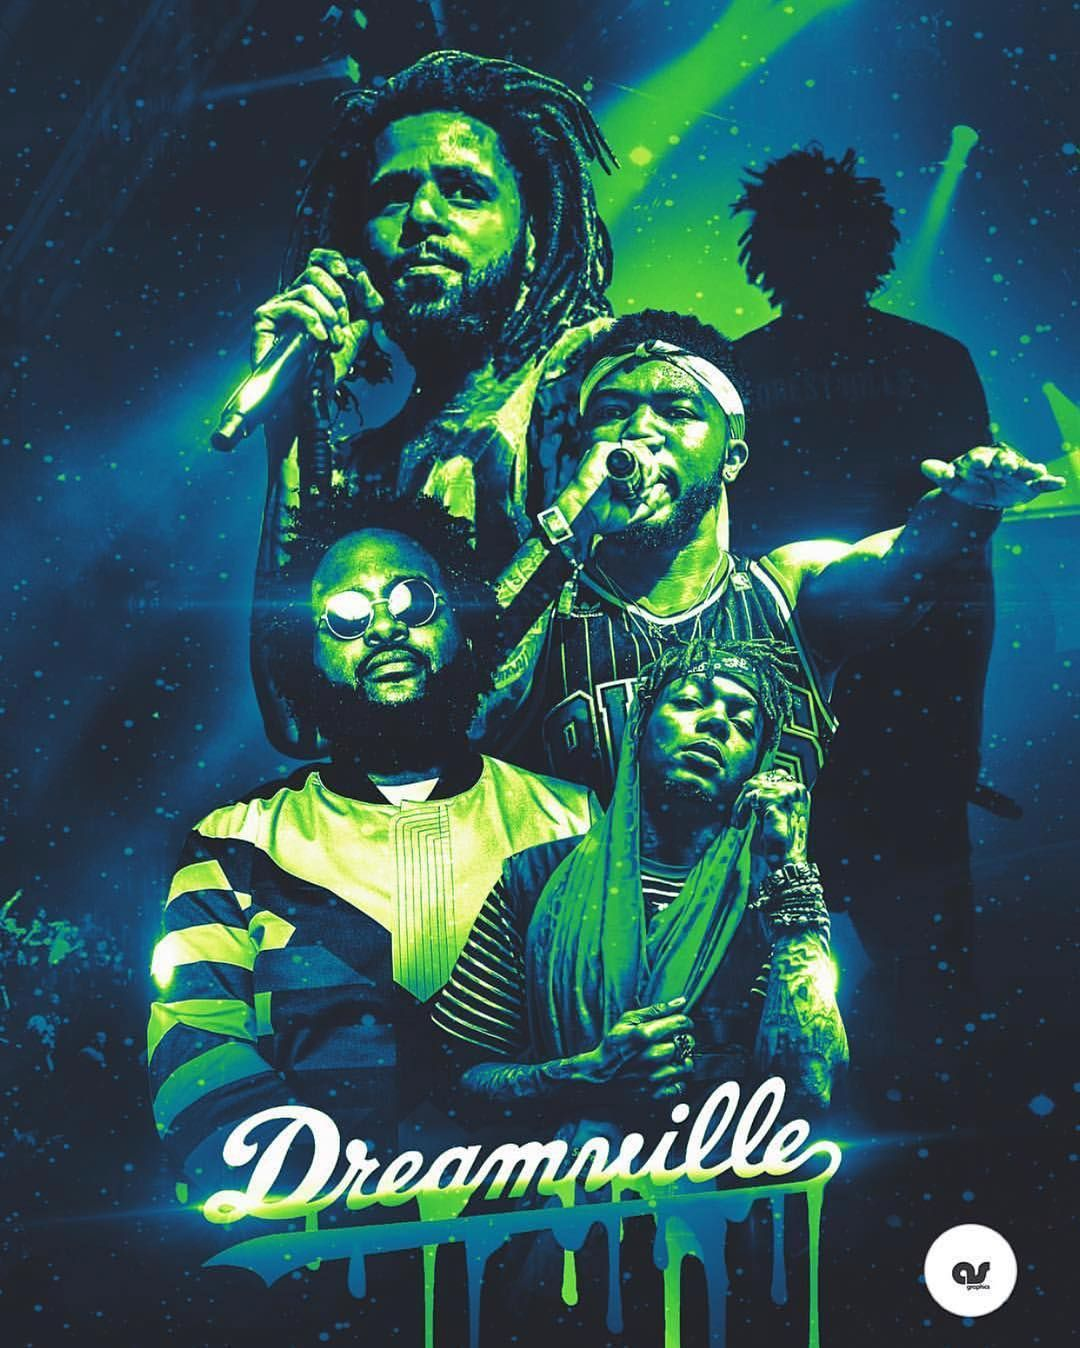 J Cole On Instagram Dreamville Stacked Like The Warriors Art By As Graphics Biggie Smalls Art Rapper Art J Cole Art